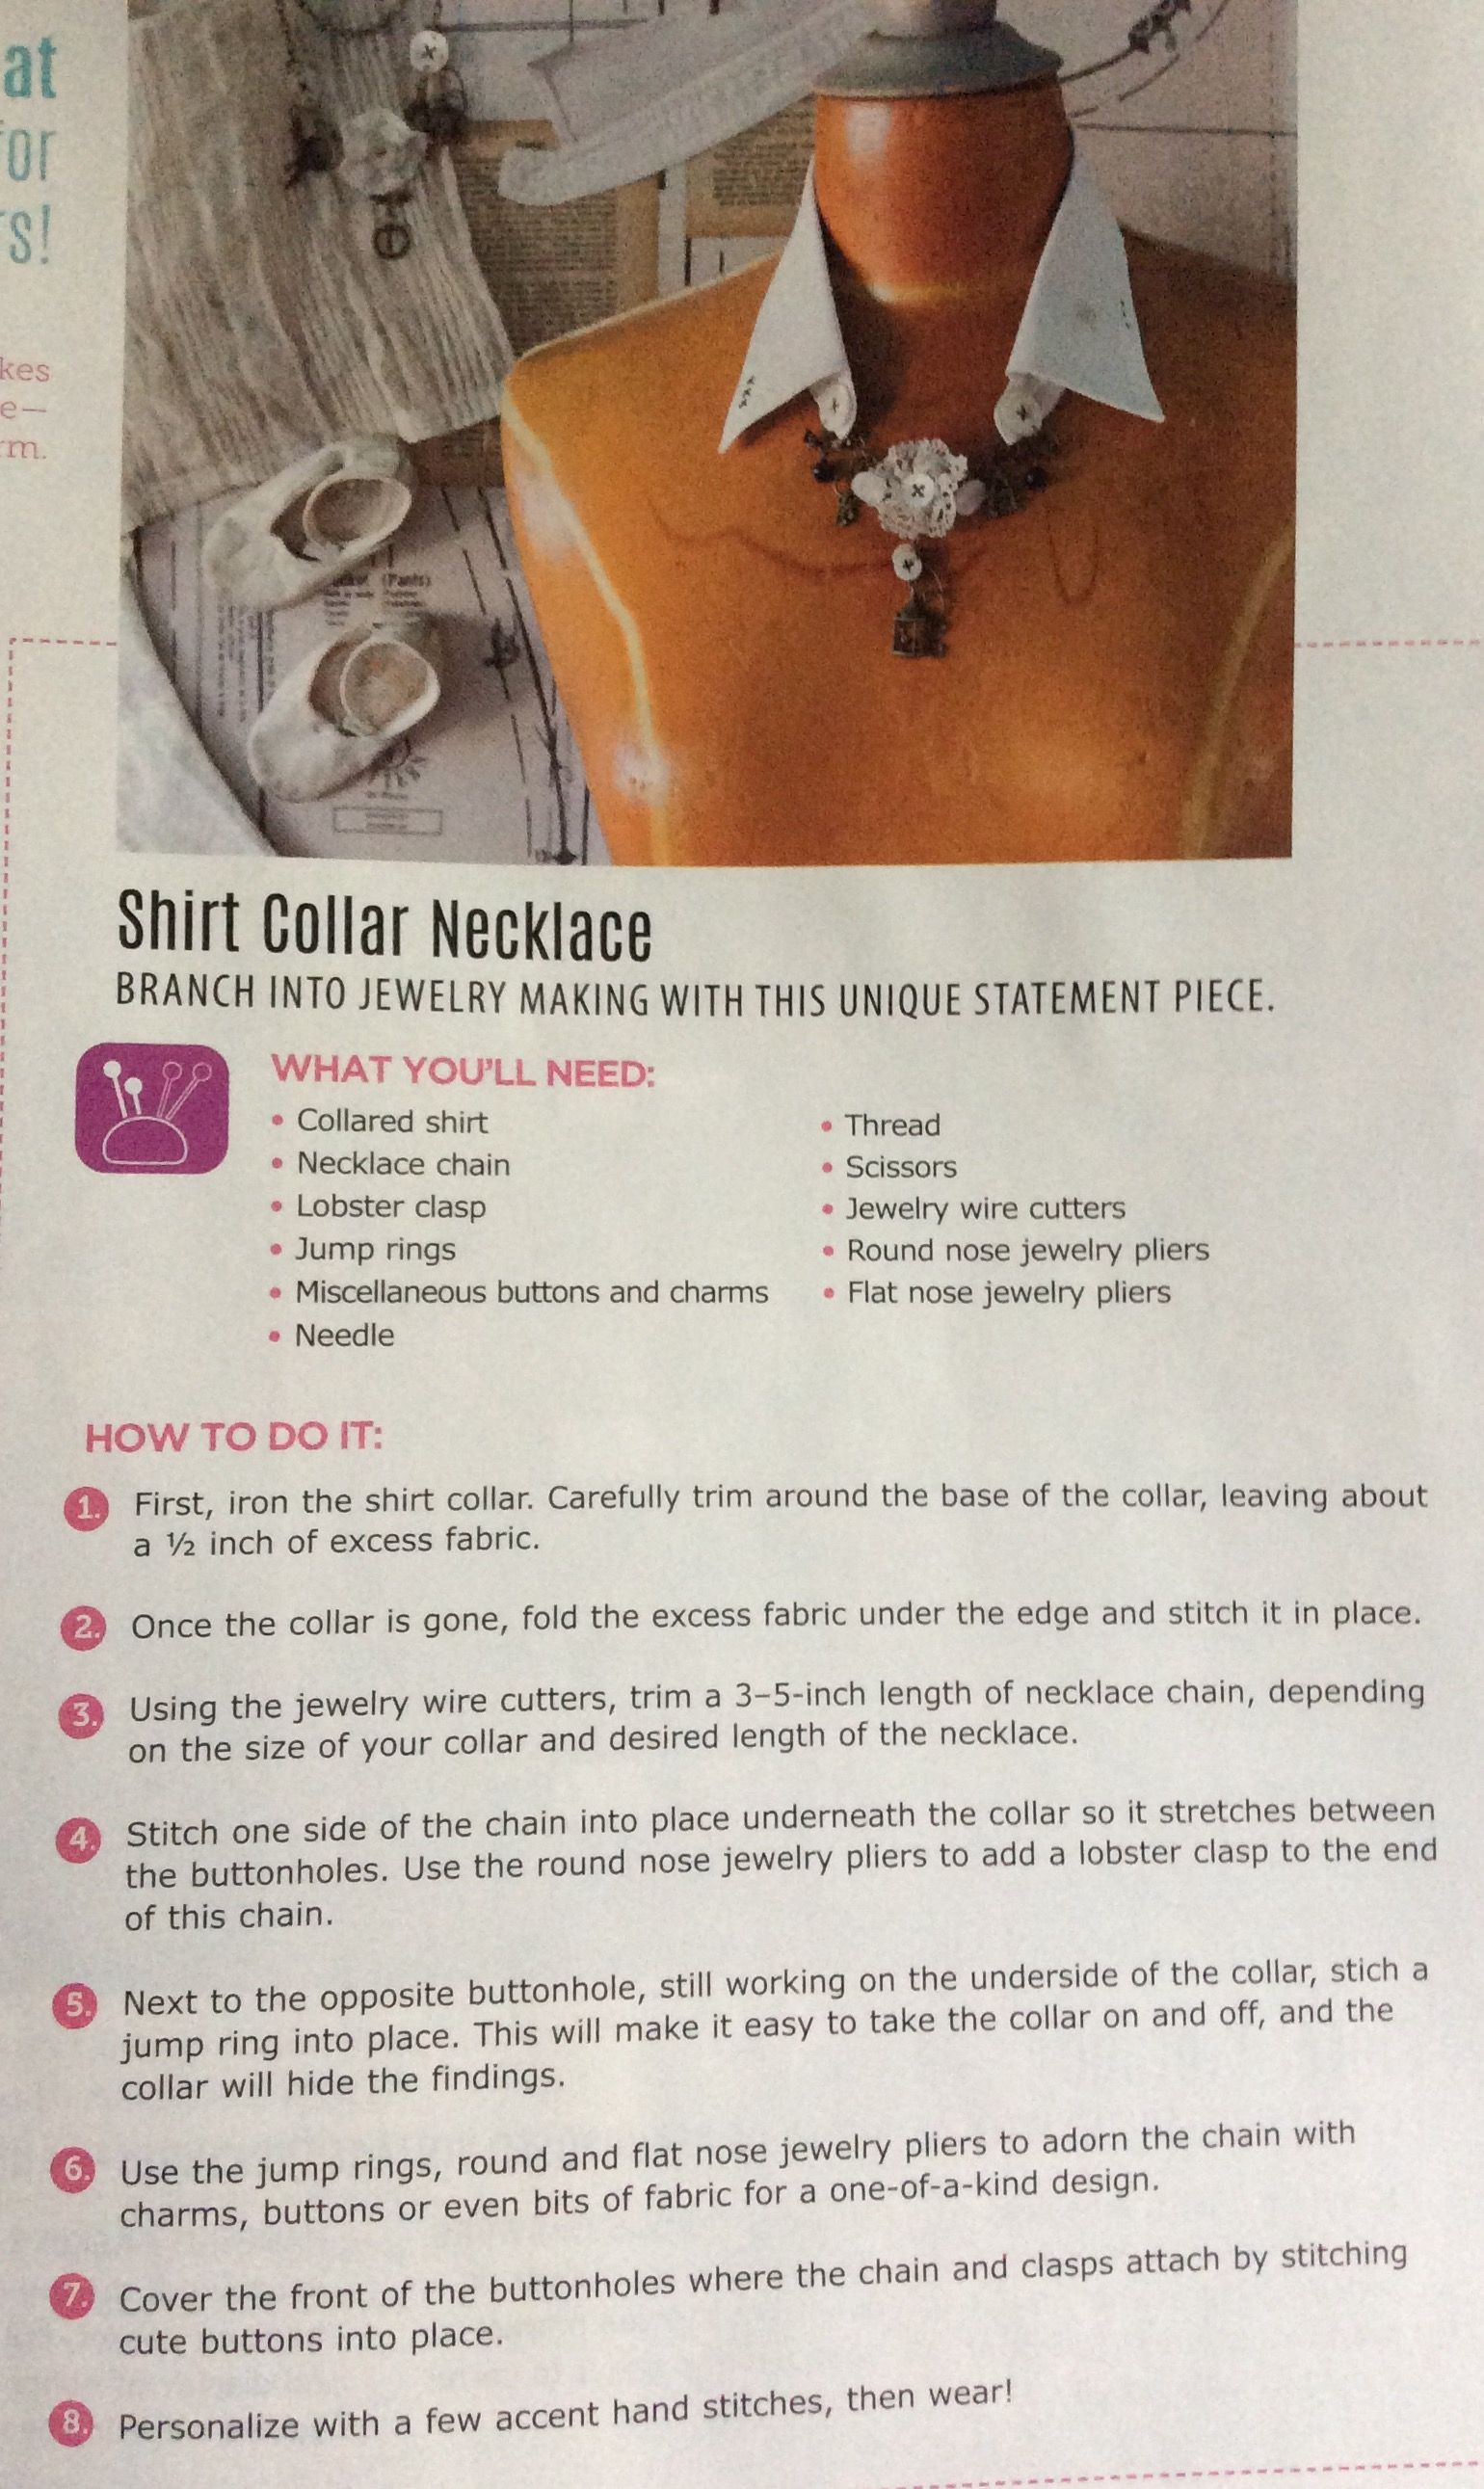 Covering up nose piercing for work  Shirt collar necklace  Craft Ideas  Pinterest  Shirt collars and